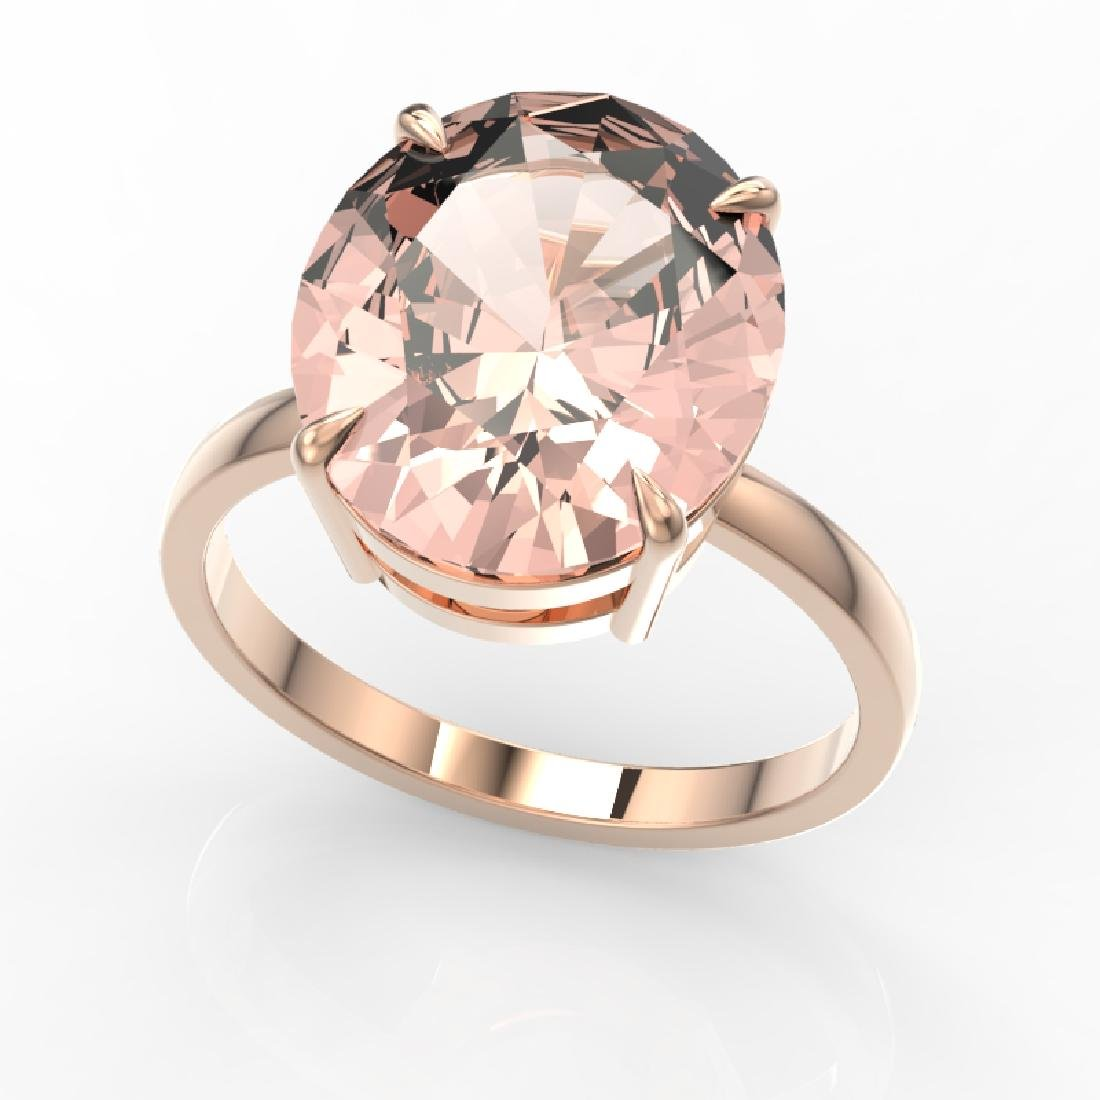 9 CTW Morganite Designer Solitaire Engagement Ring 14K - 2